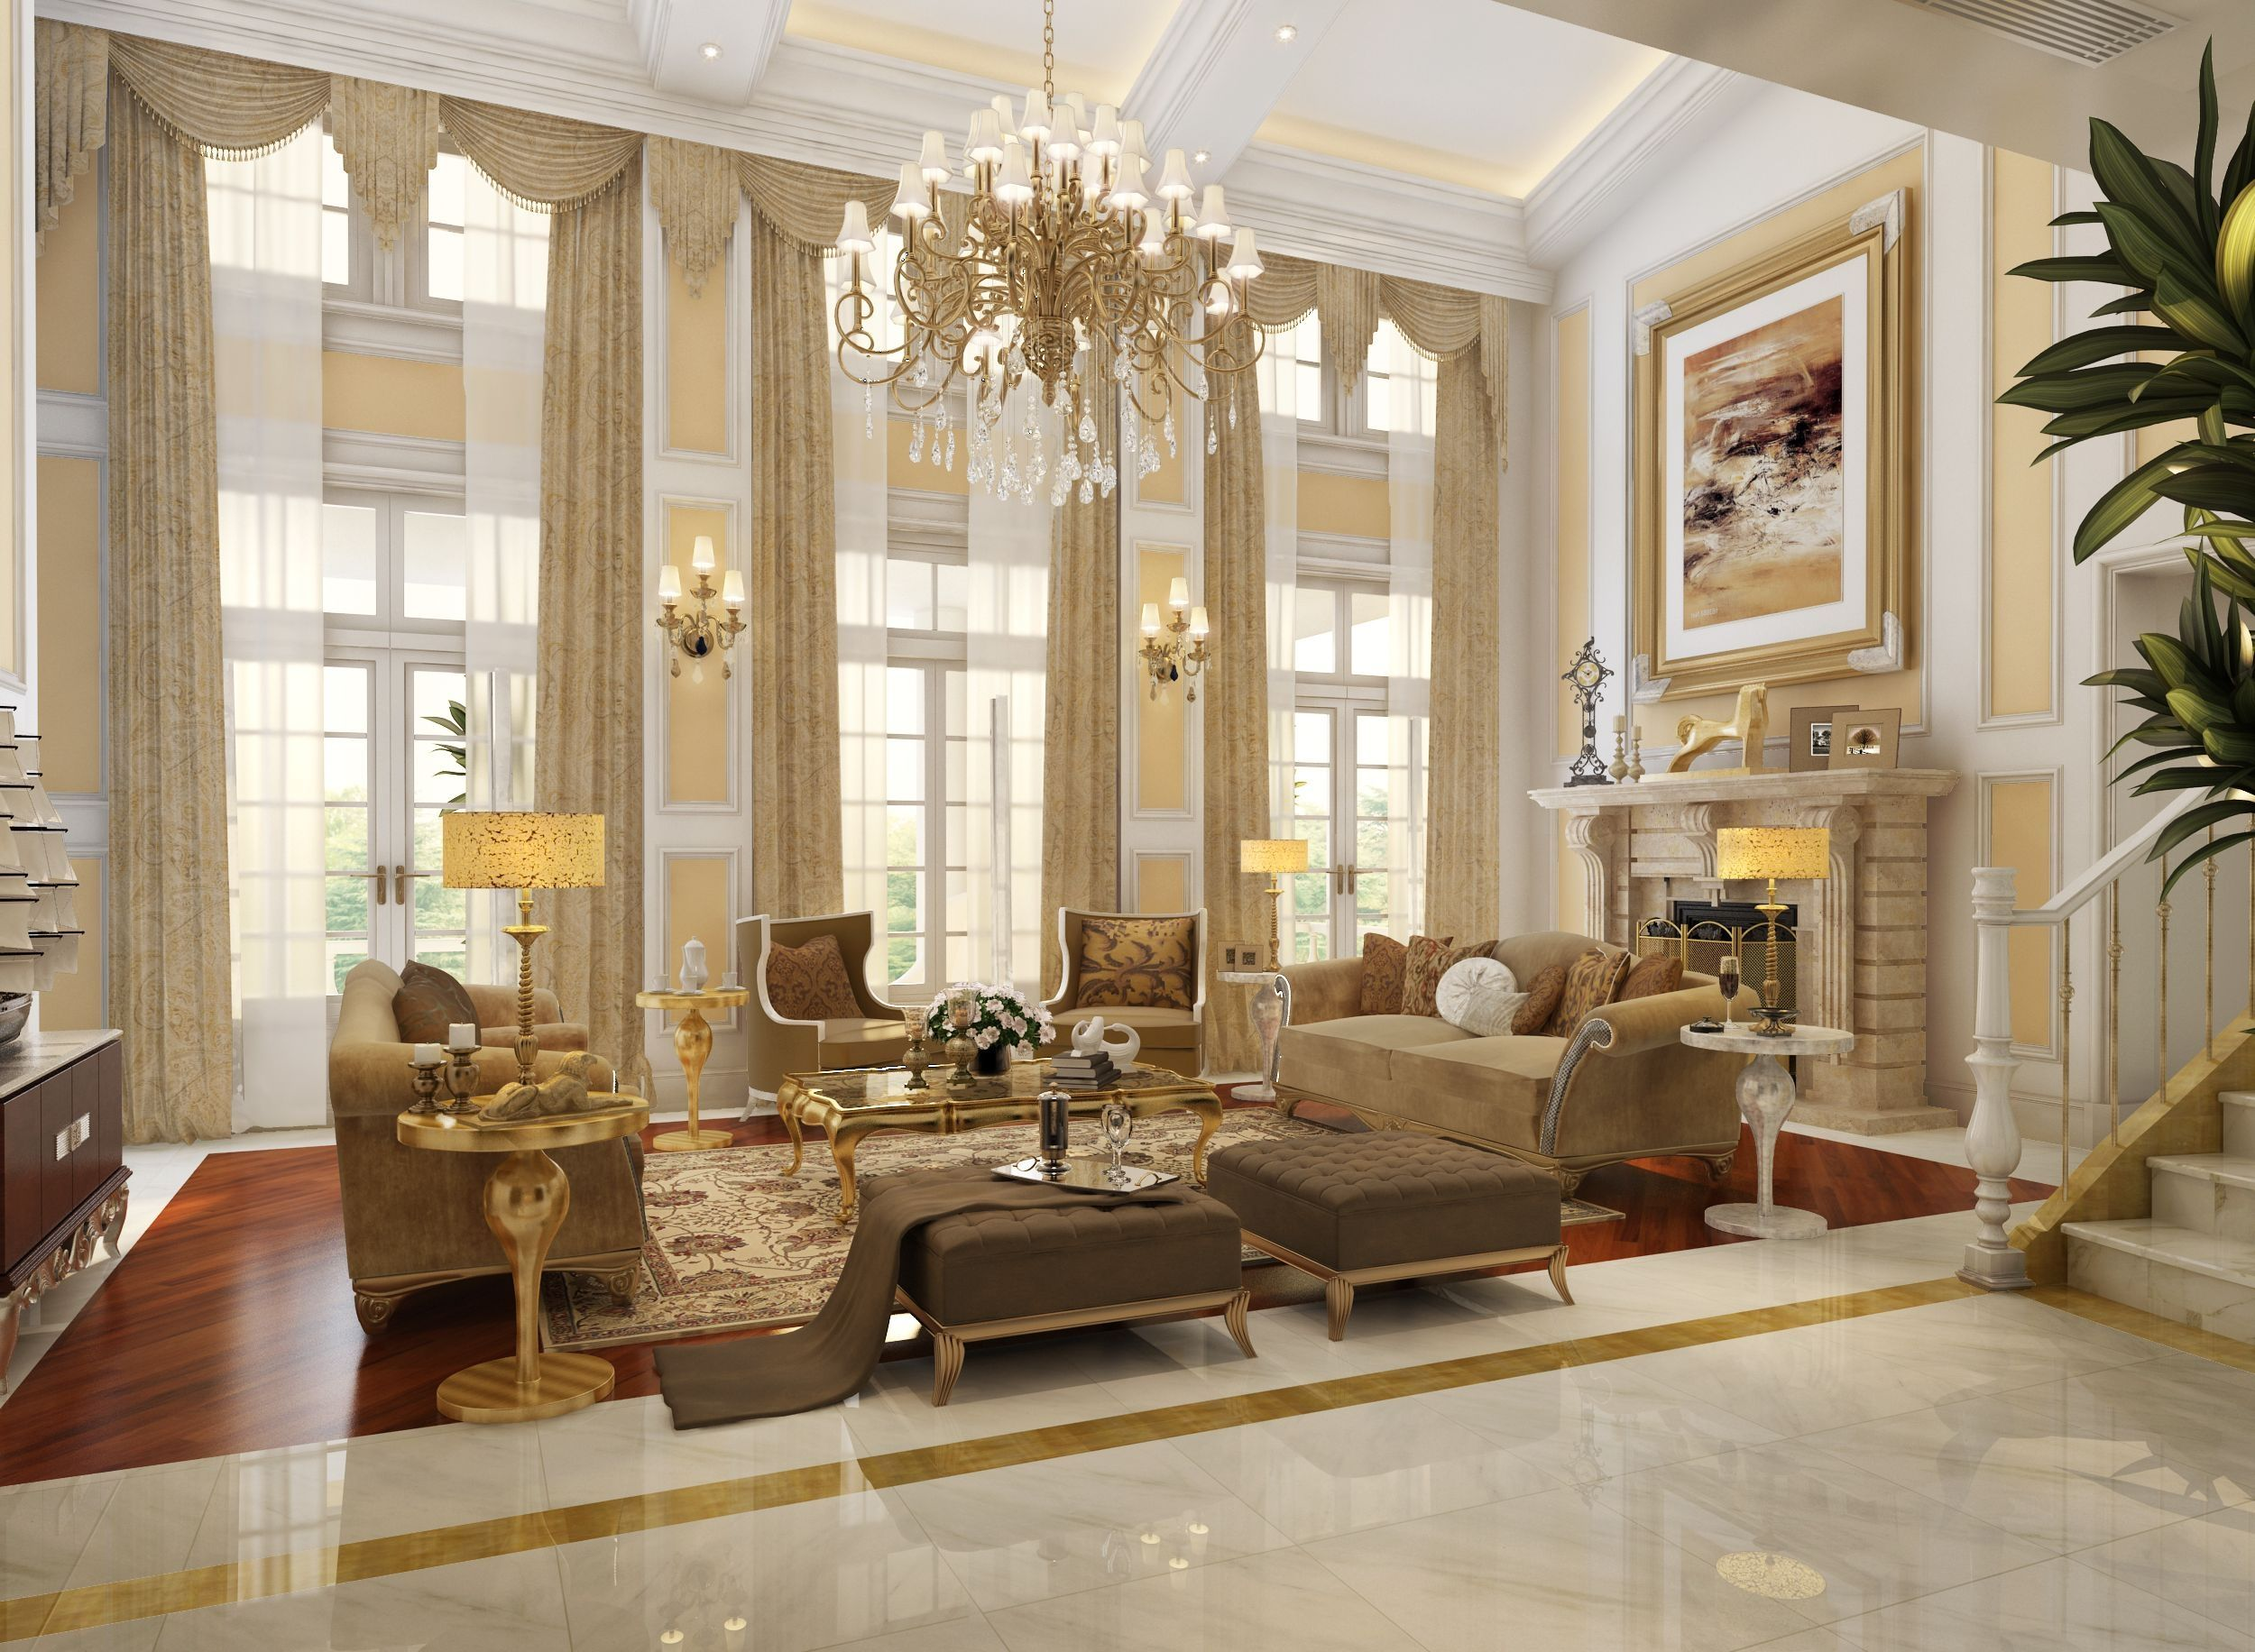 Ordinaire 24 Luxurious Interior Design Inspirations For Your New Home With Victorian  Luxury Style   Interior Design